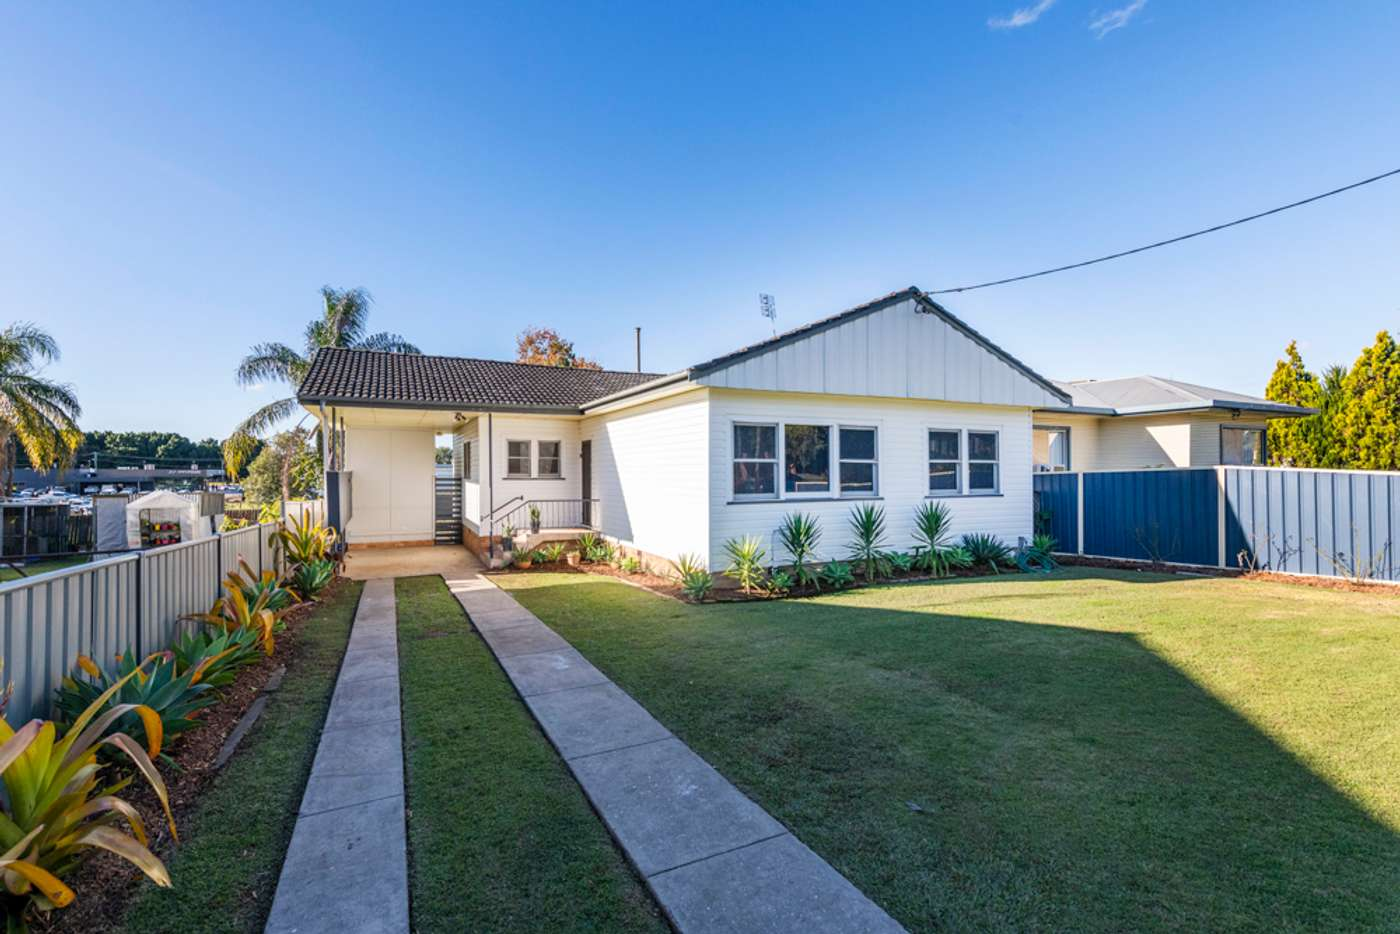 Main view of Homely house listing, 27 Vere Street, South Grafton NSW 2460